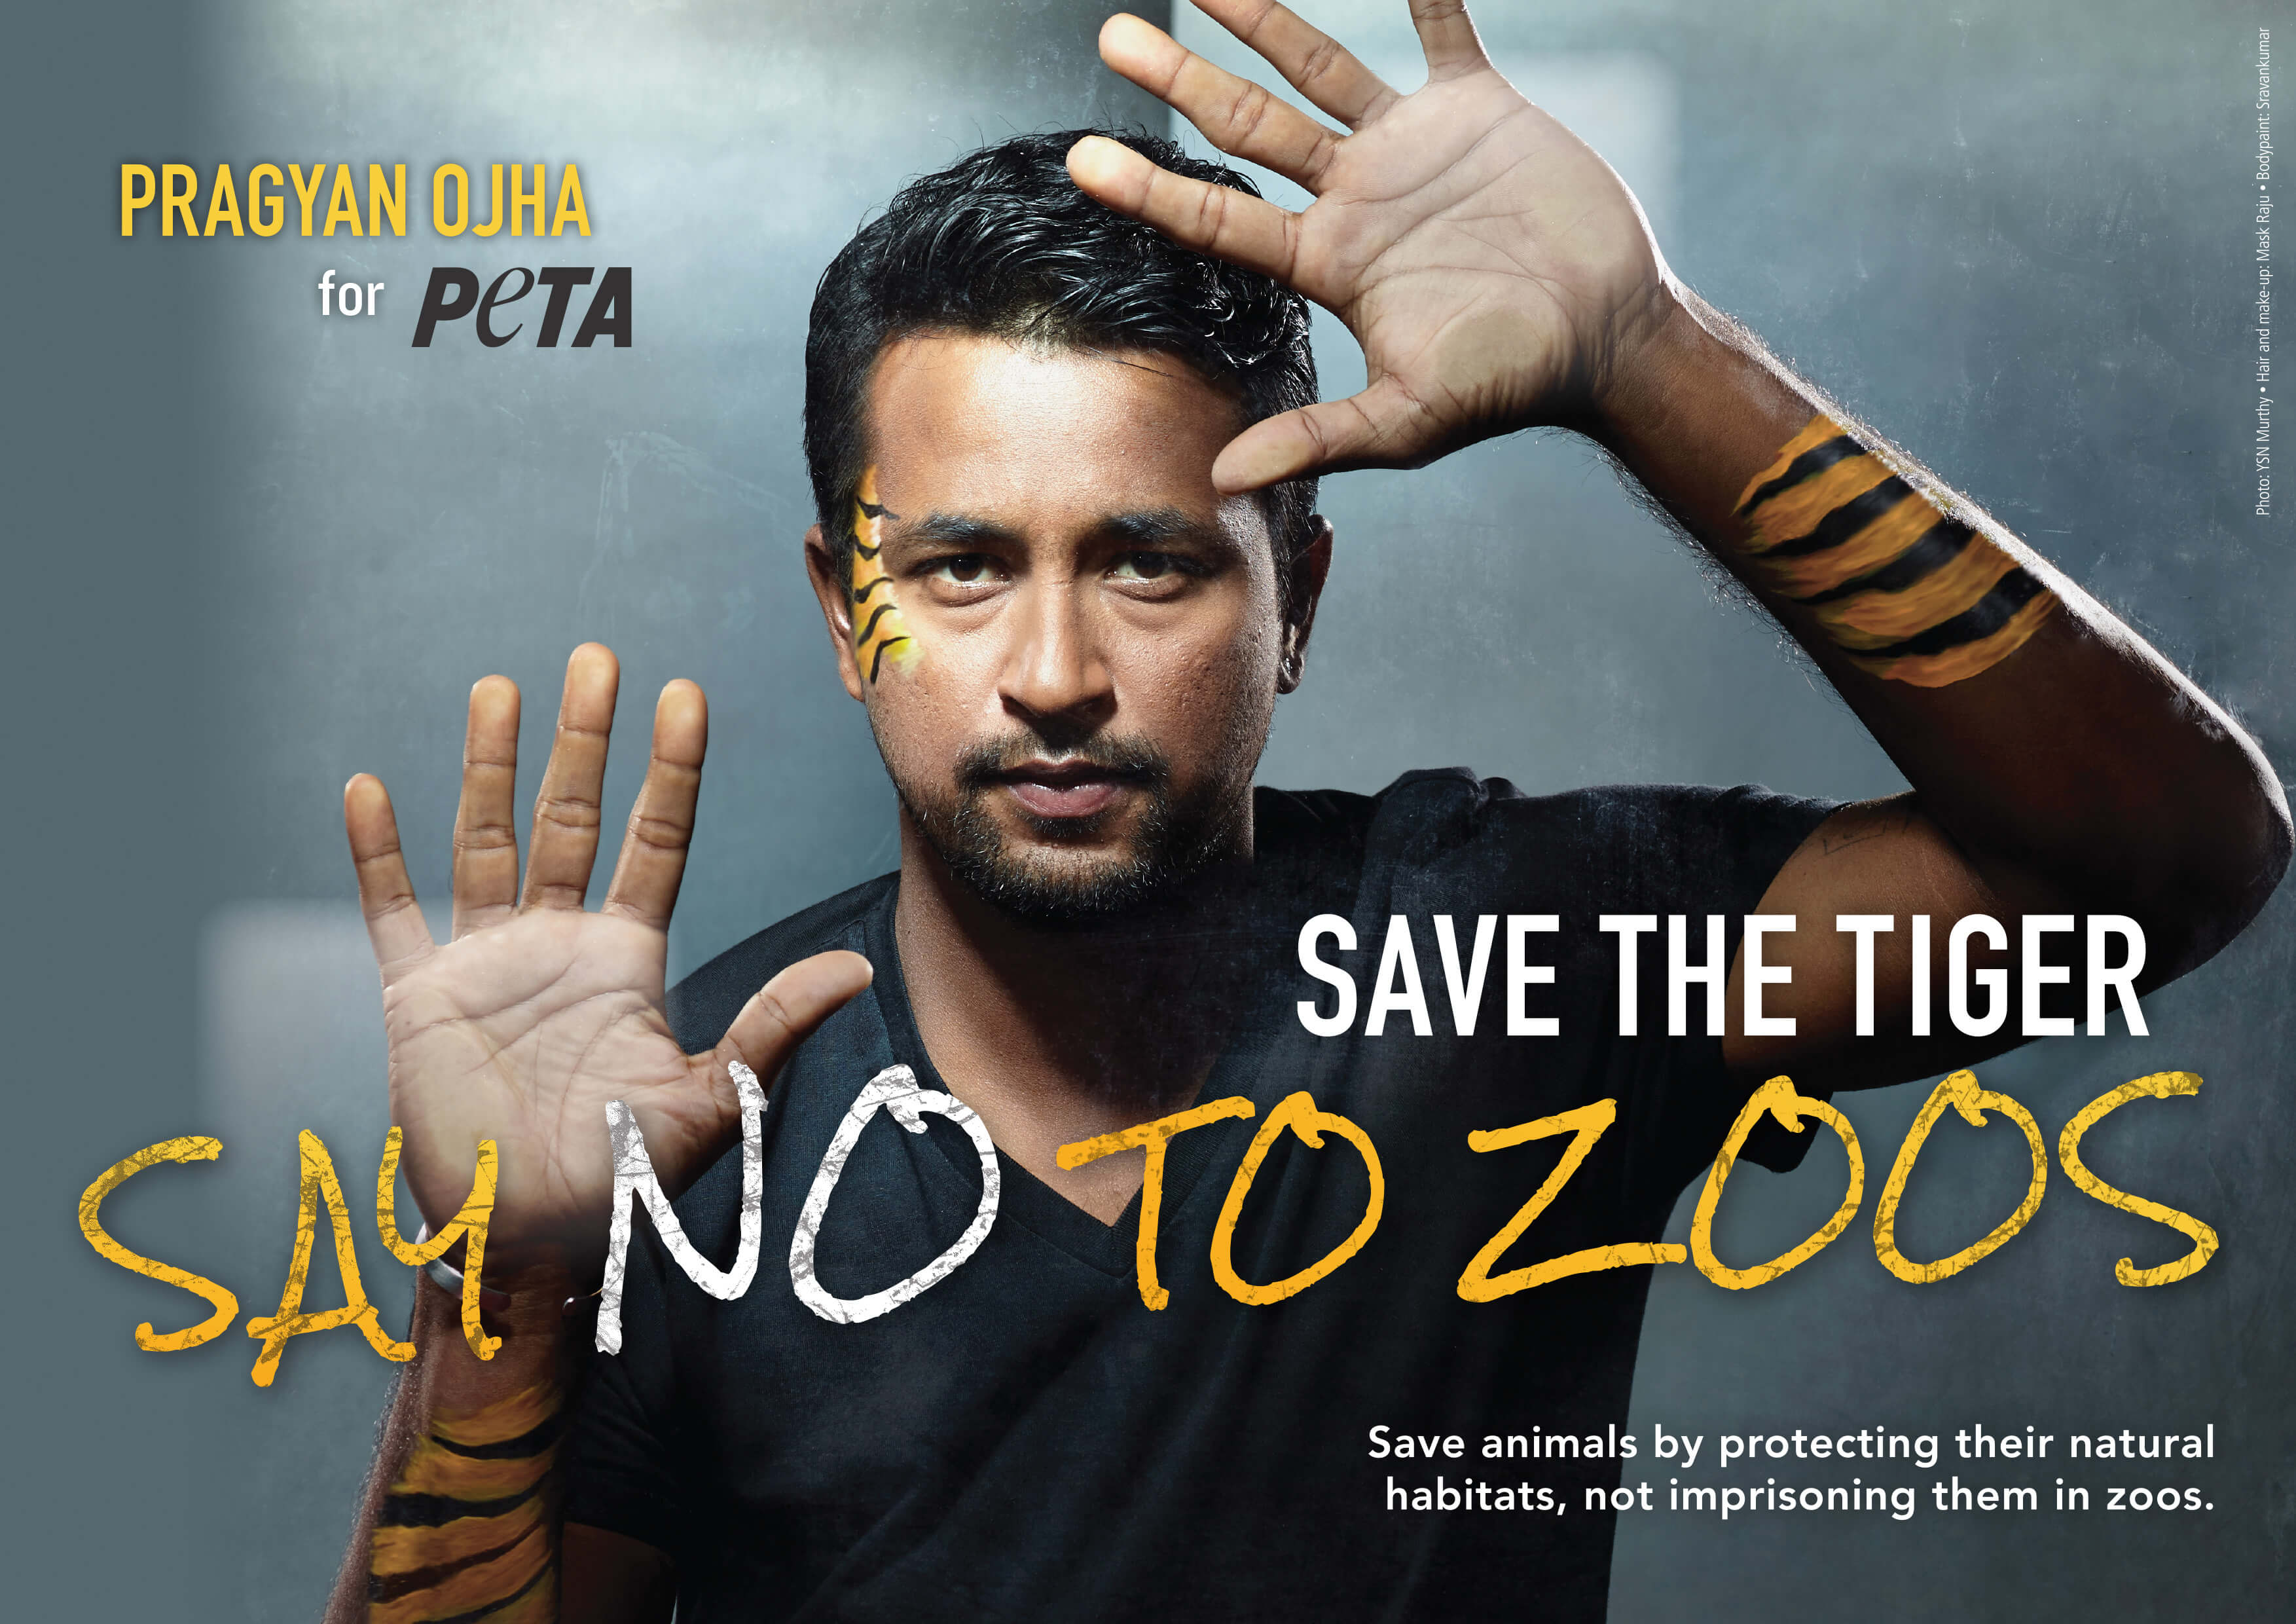 Pragyan Ojha Says NO to Zoos in PETA ad